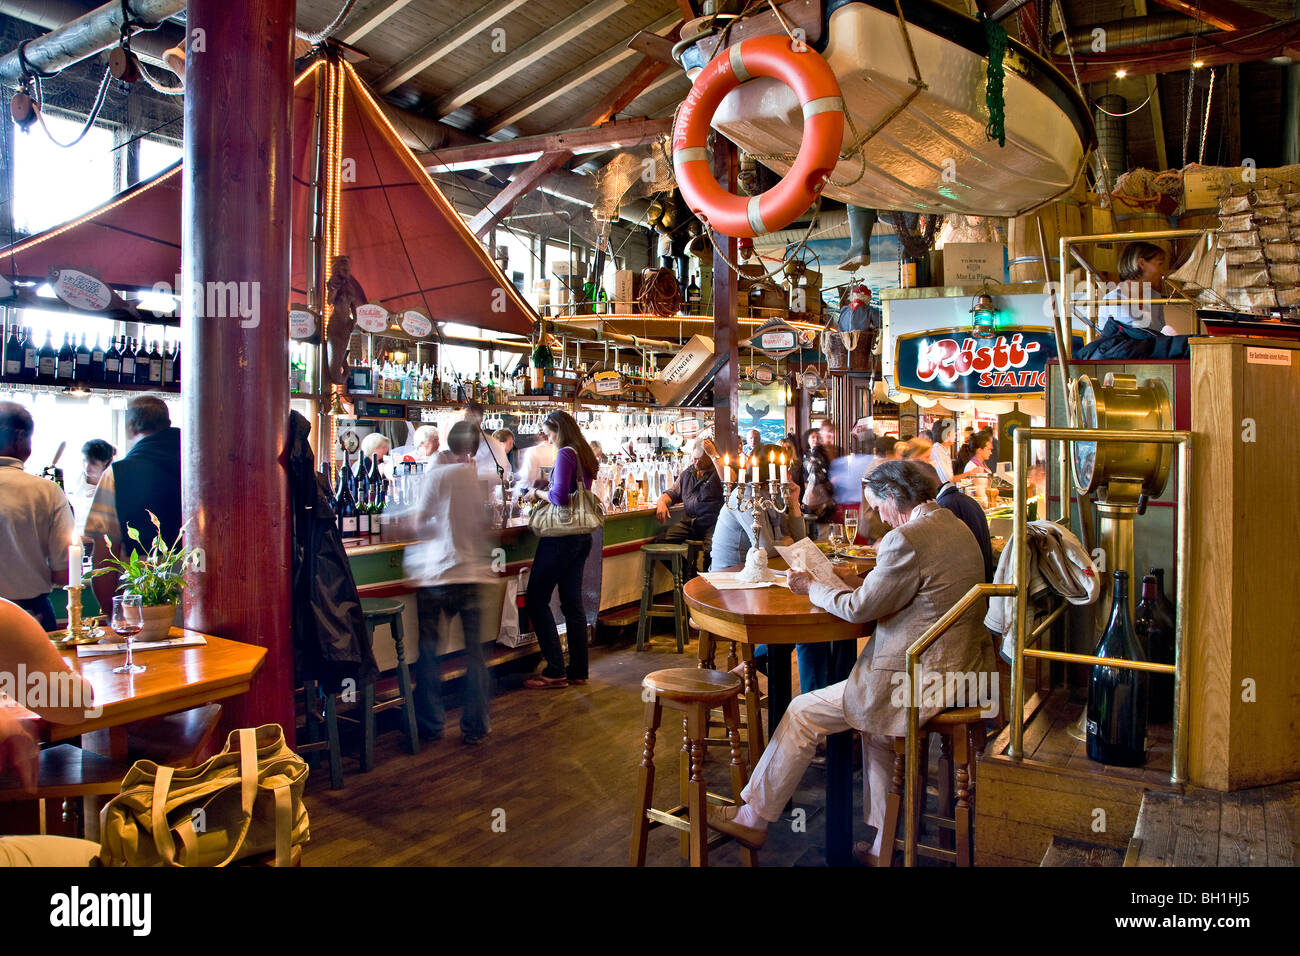 Guests in a fish restaurnat, List, Sylt Island, Schleswig-Holstein, Germany - Stock Image